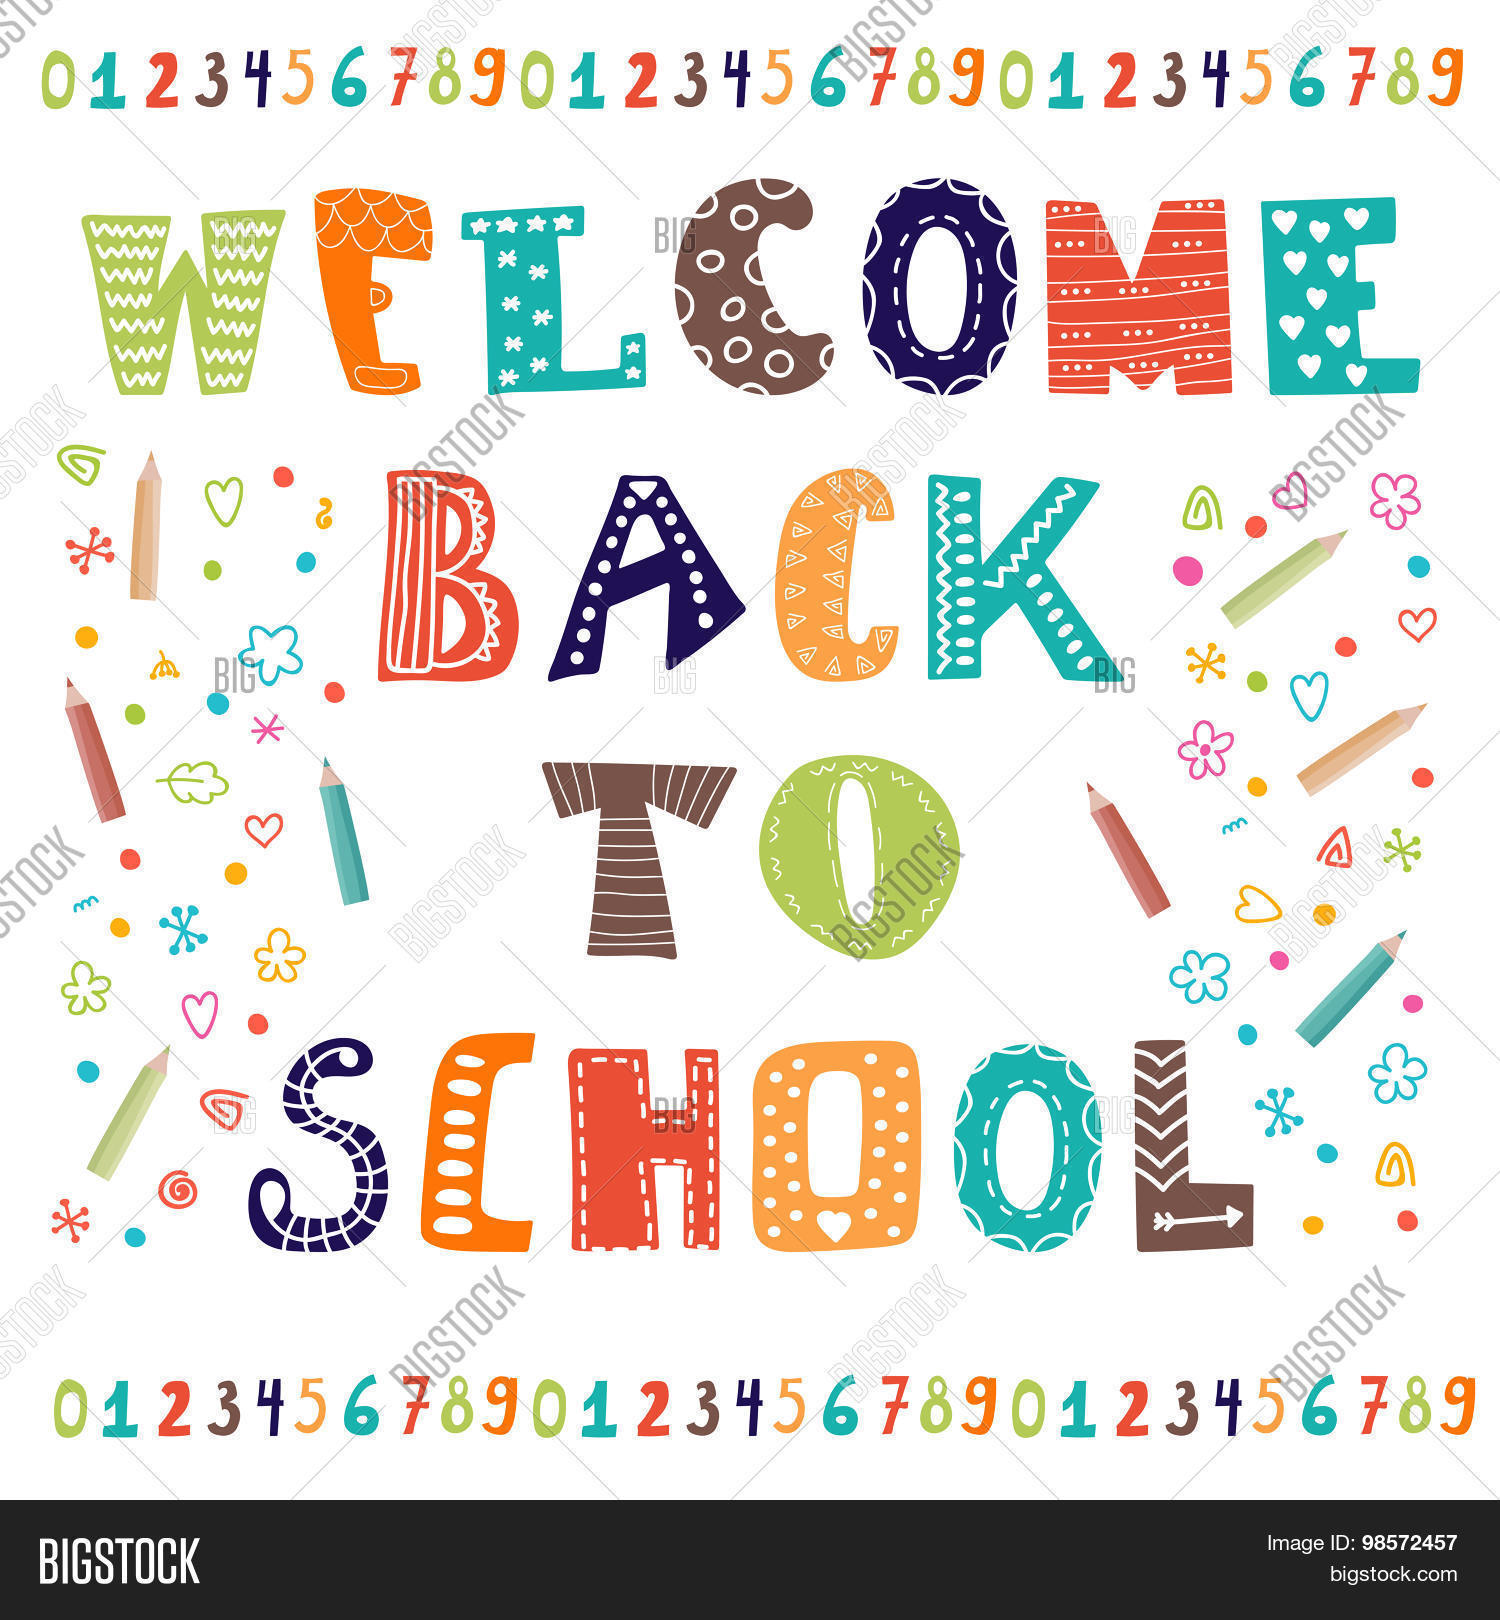 Welcome back school greeting card vector photo bigstock welcome back to school greeting card back to school design template kristyandbryce Choice Image